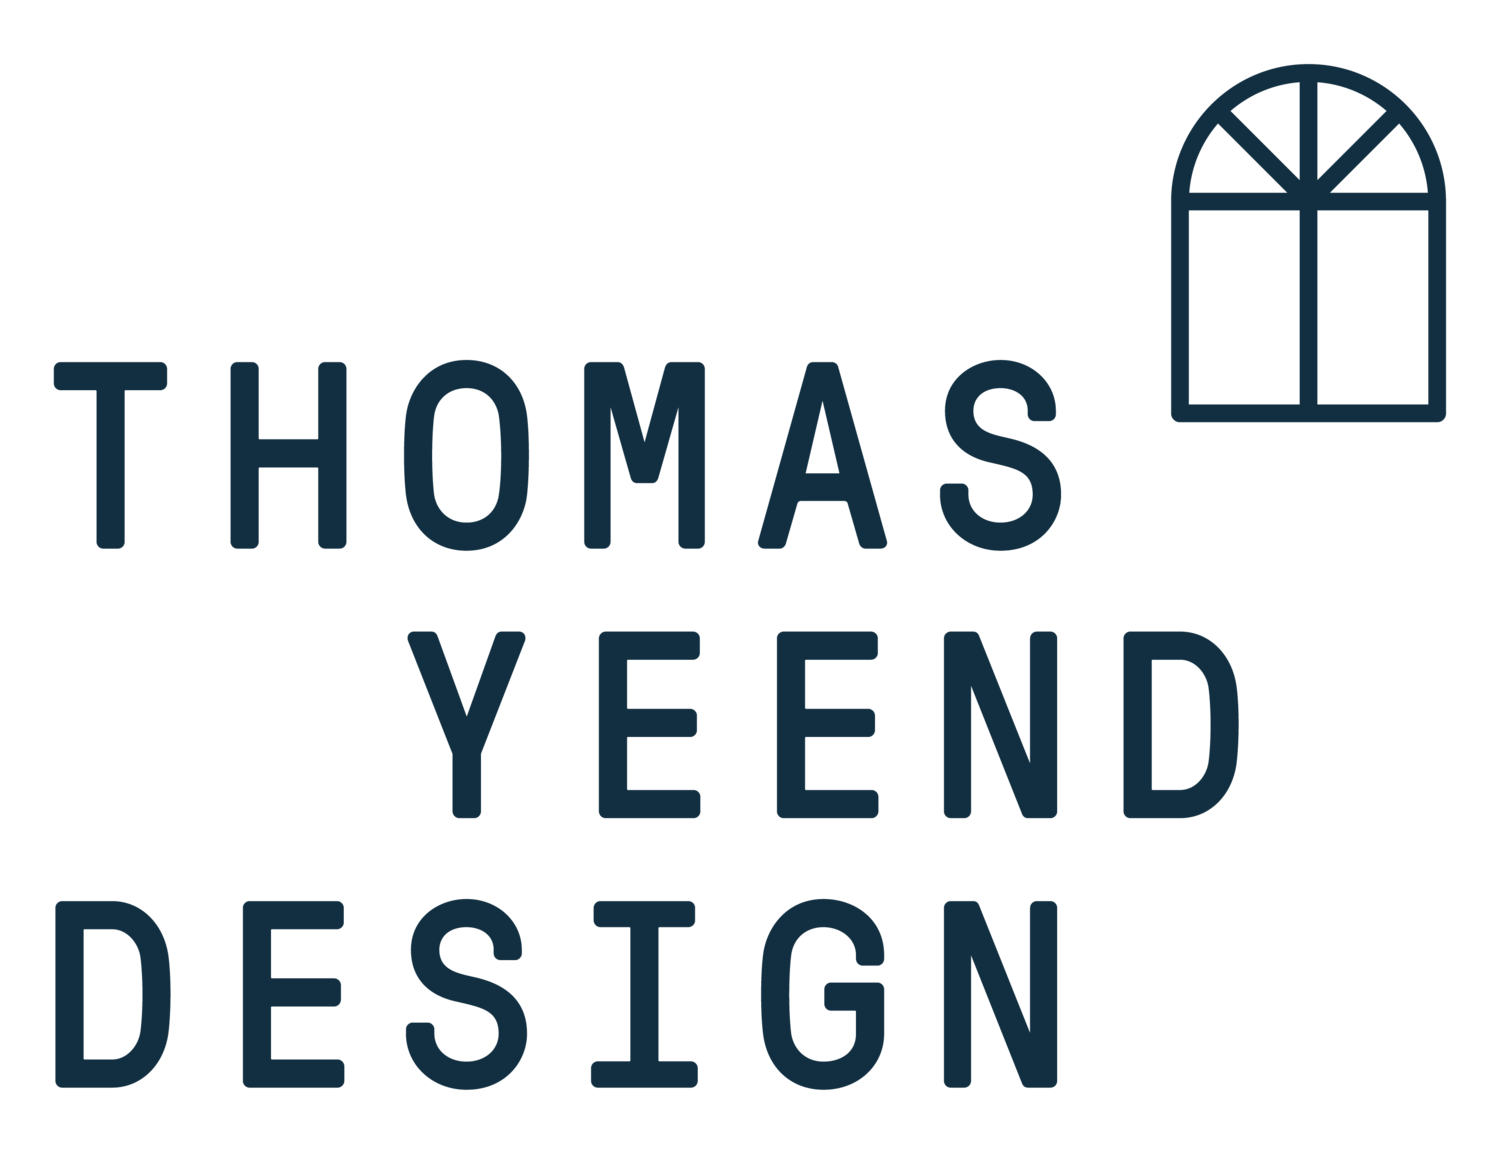 Thomas Yeend Design